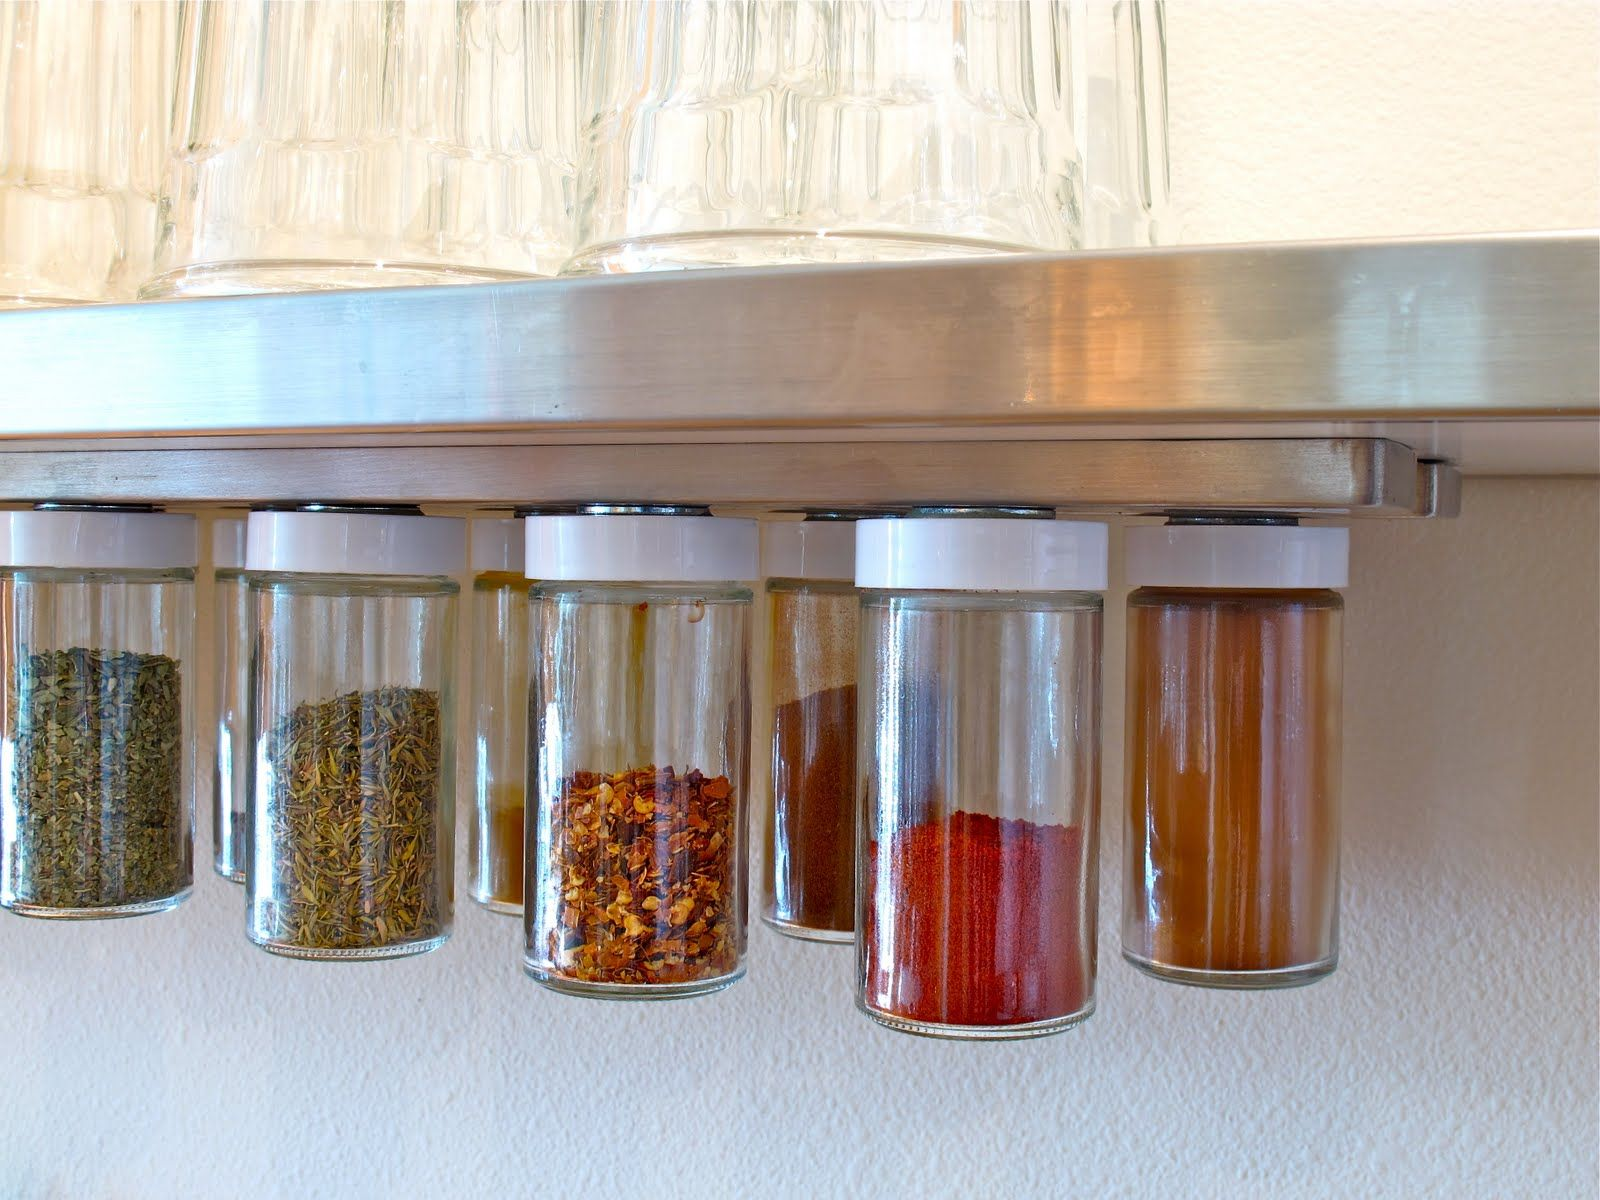 BluKatKraft: DIY Hanging Magnetic Spice Rack/Storage   I Will Try Using  Jars With Metal Lids So I May Not Need Washers